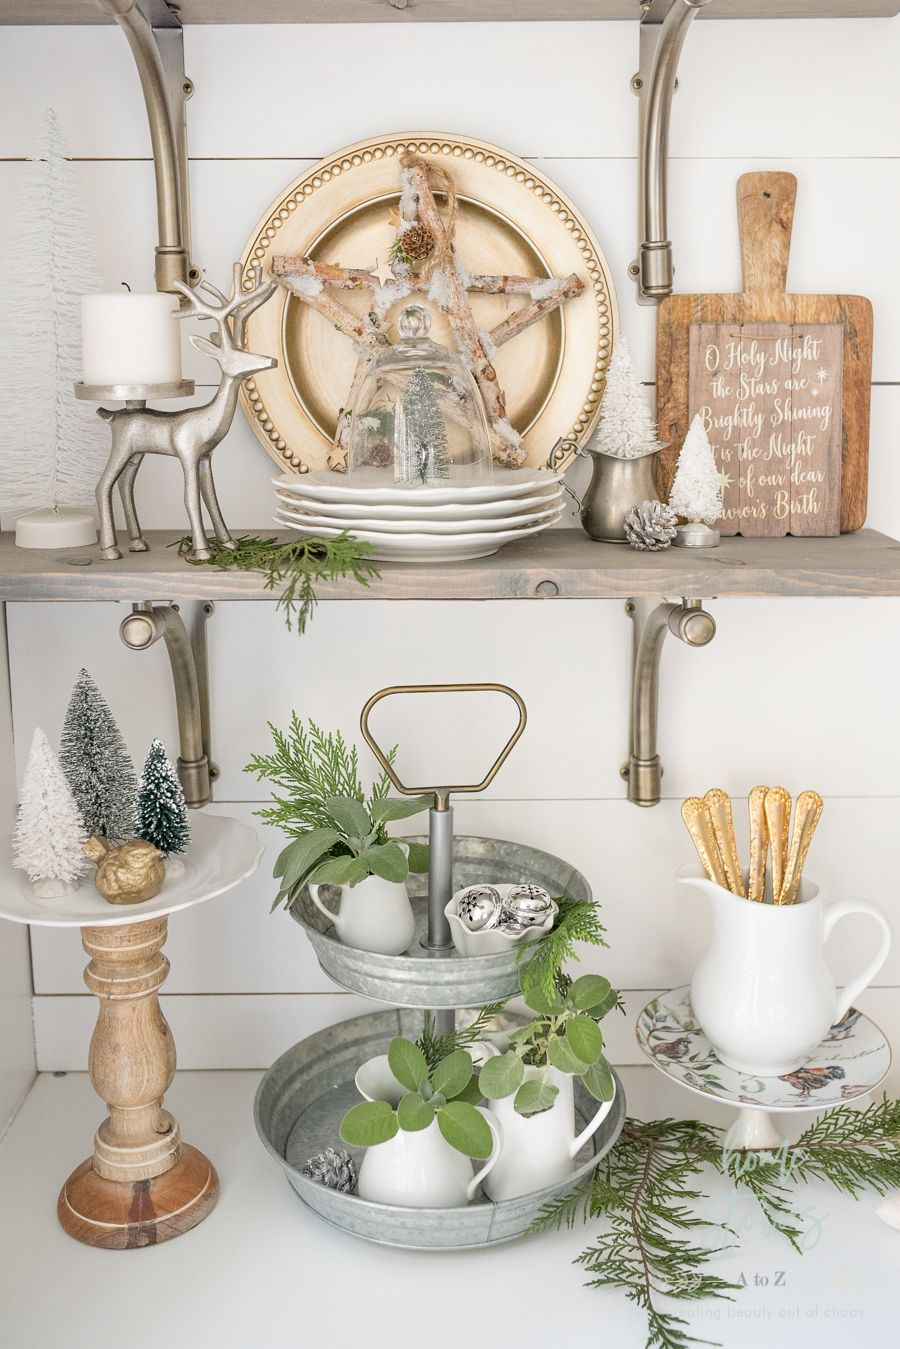 Farmhouse Christmas Tips on How to Affordably Decorate